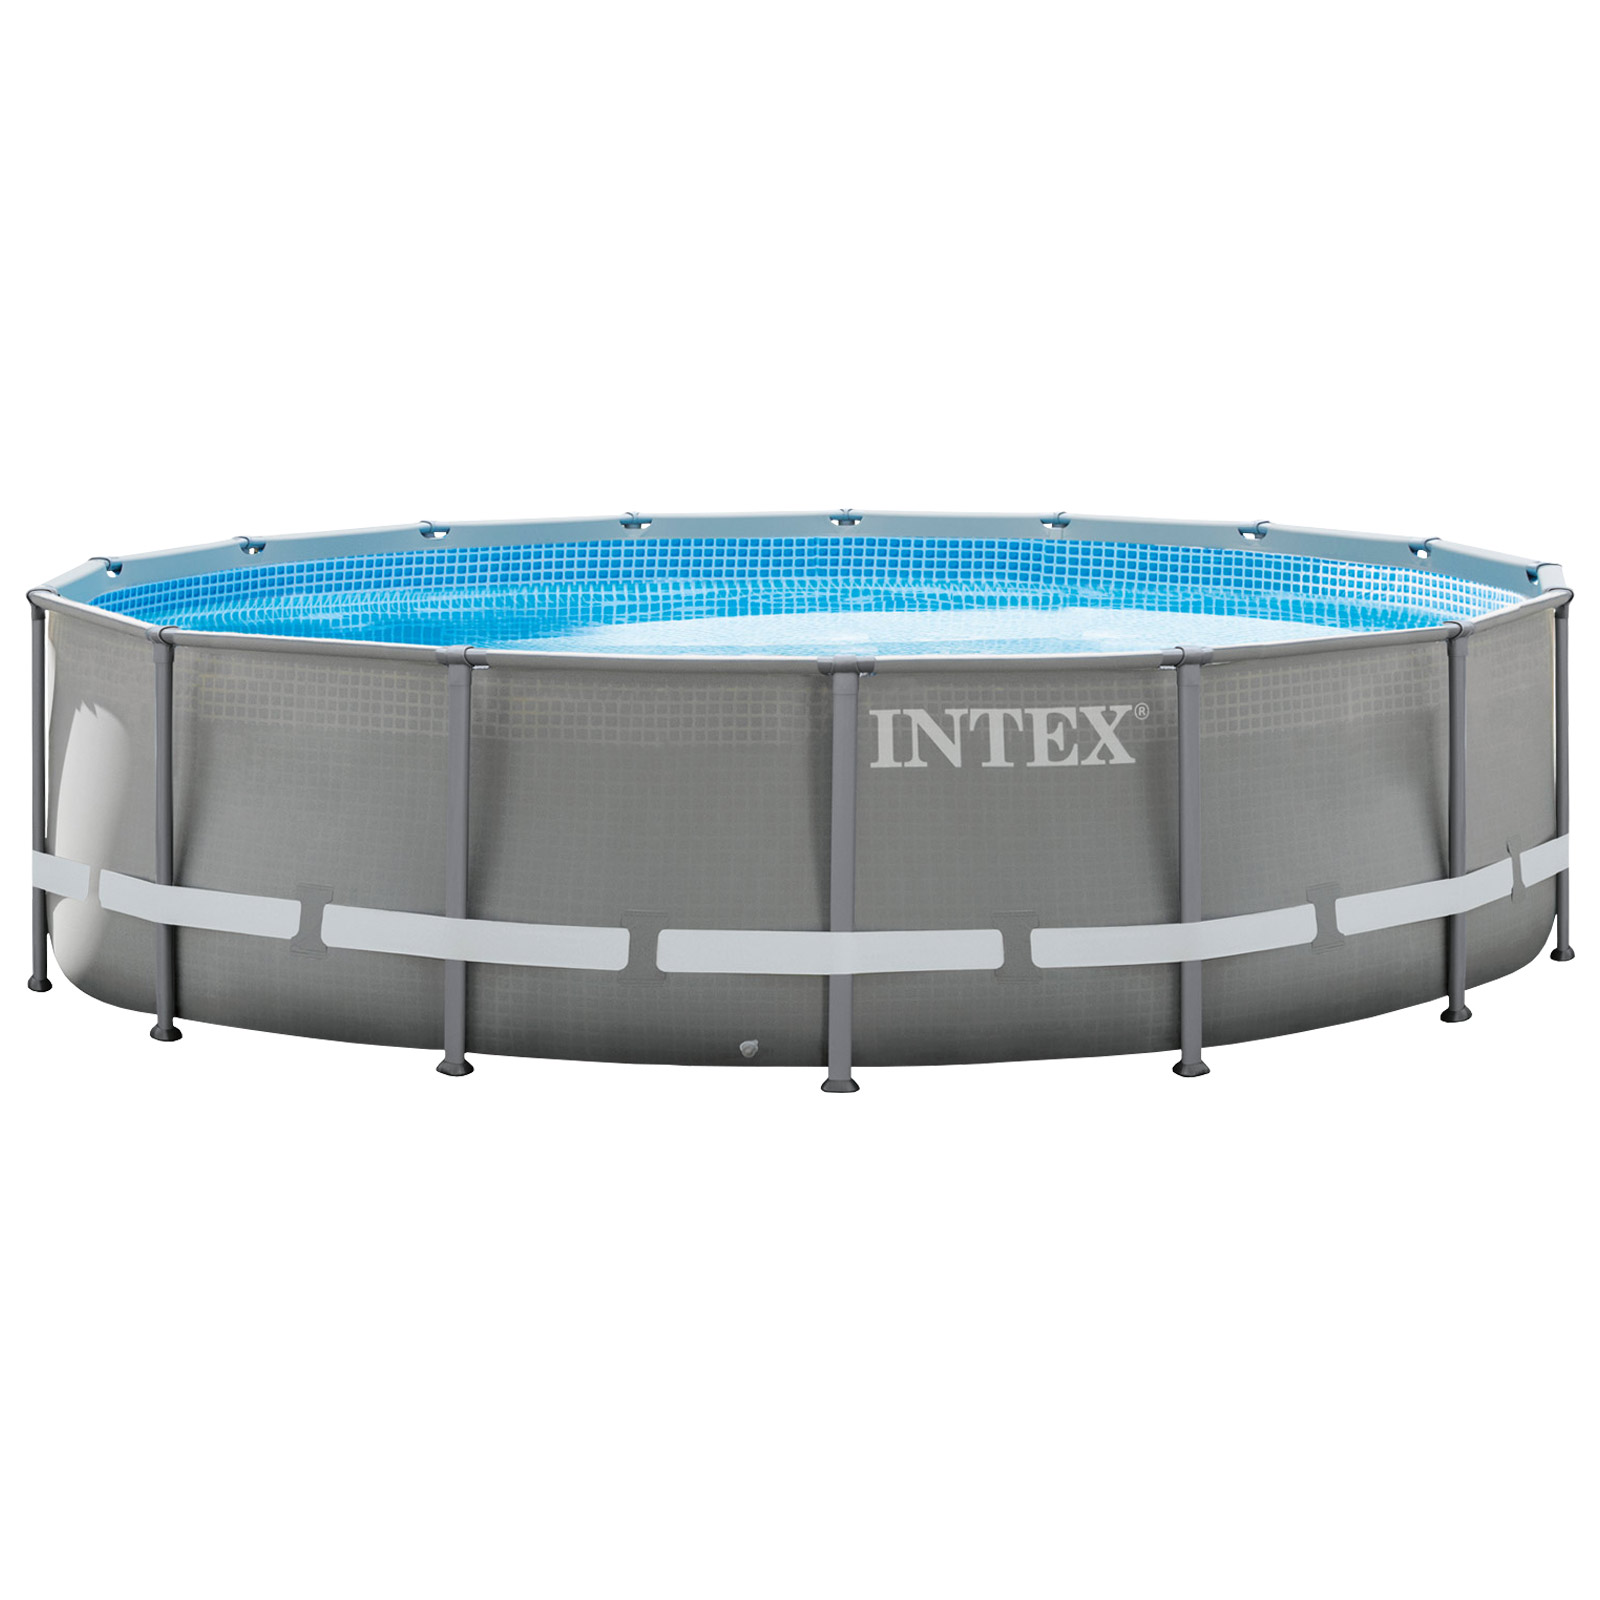 Pool Sandfilteranlage Trotzdem Chlor Intex 488x122 Cm Swimming Pool Frame Set Mit Sandfilter Leiter